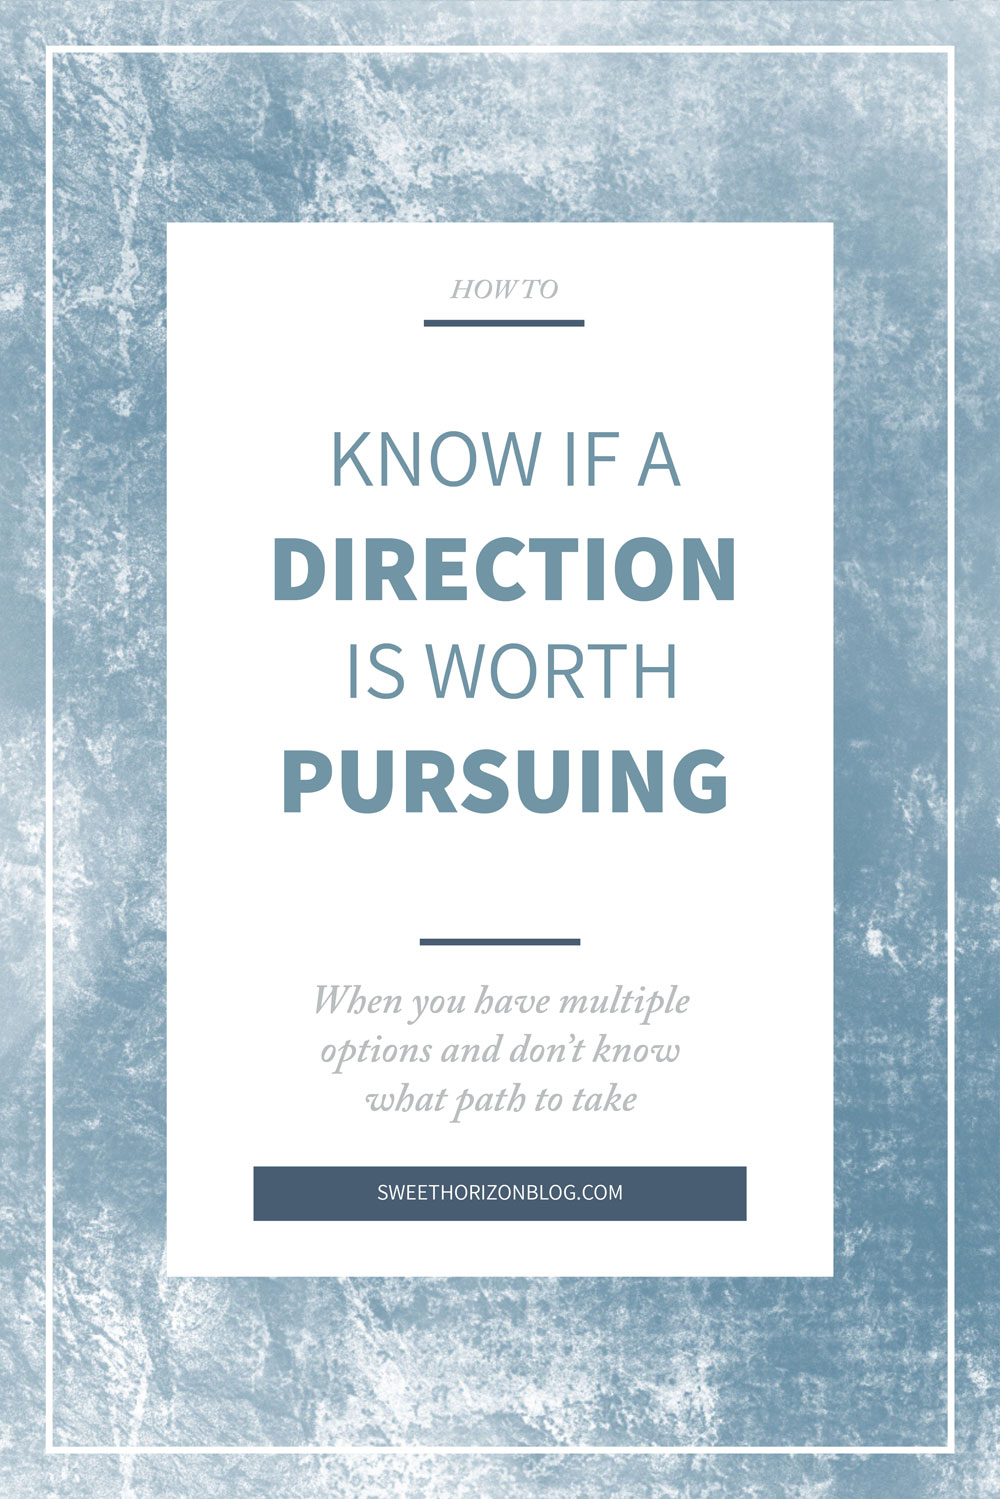 How to Know if a Direction is Worth Pursuing from www.sweethorizonblog.com